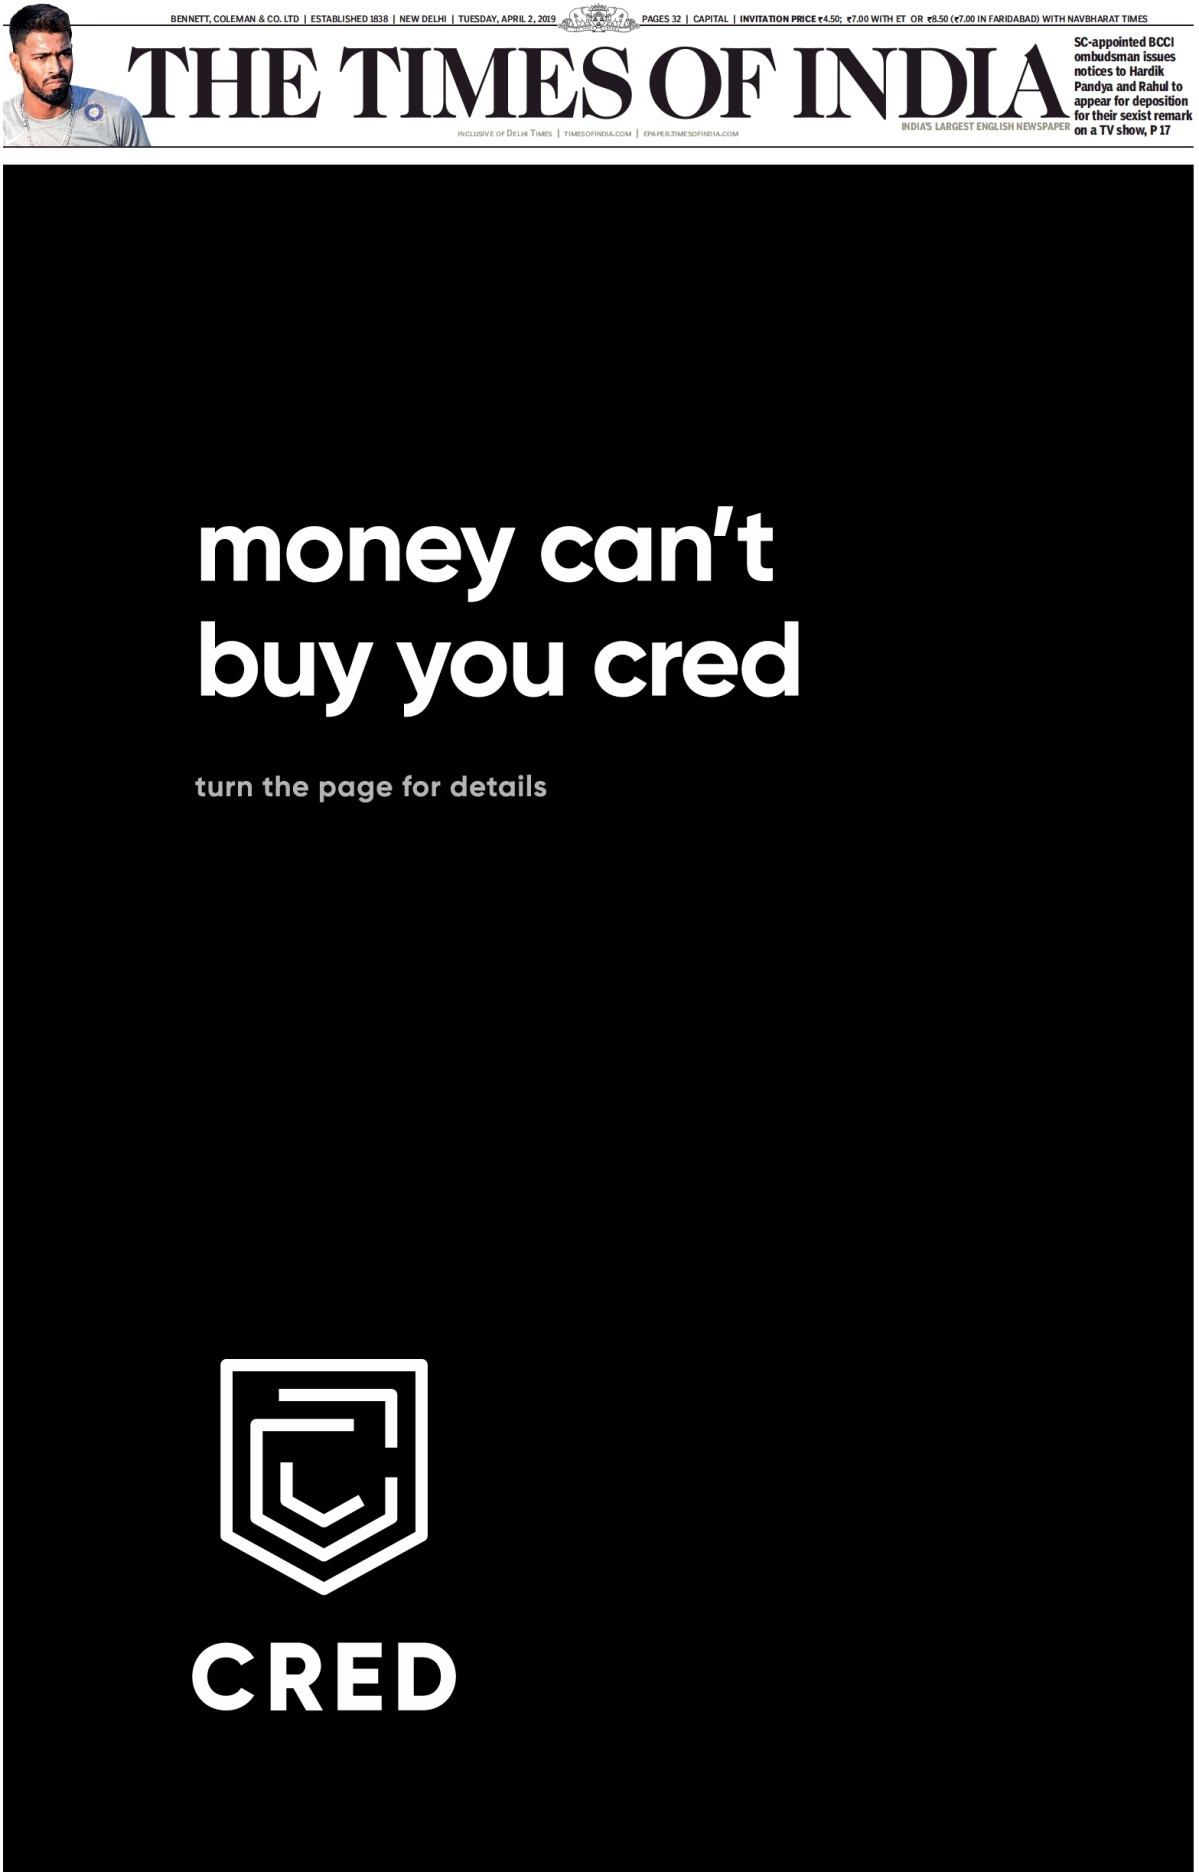 Cred's full page ad on Times of India